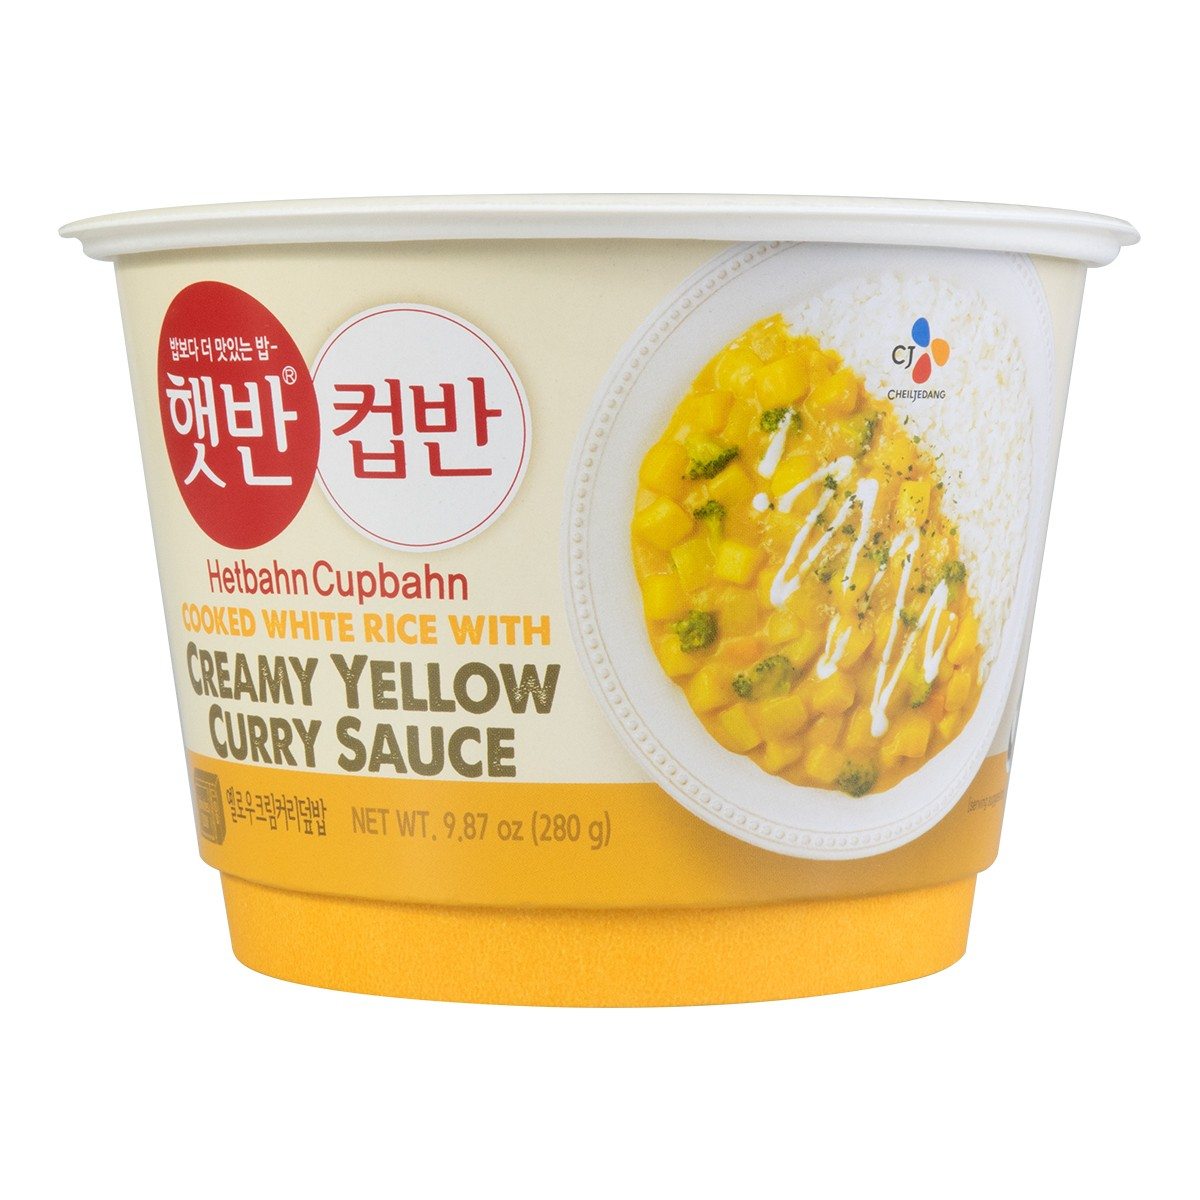 CJ Cooked White Rice With Creamy Yellow Curry Sauce 280g